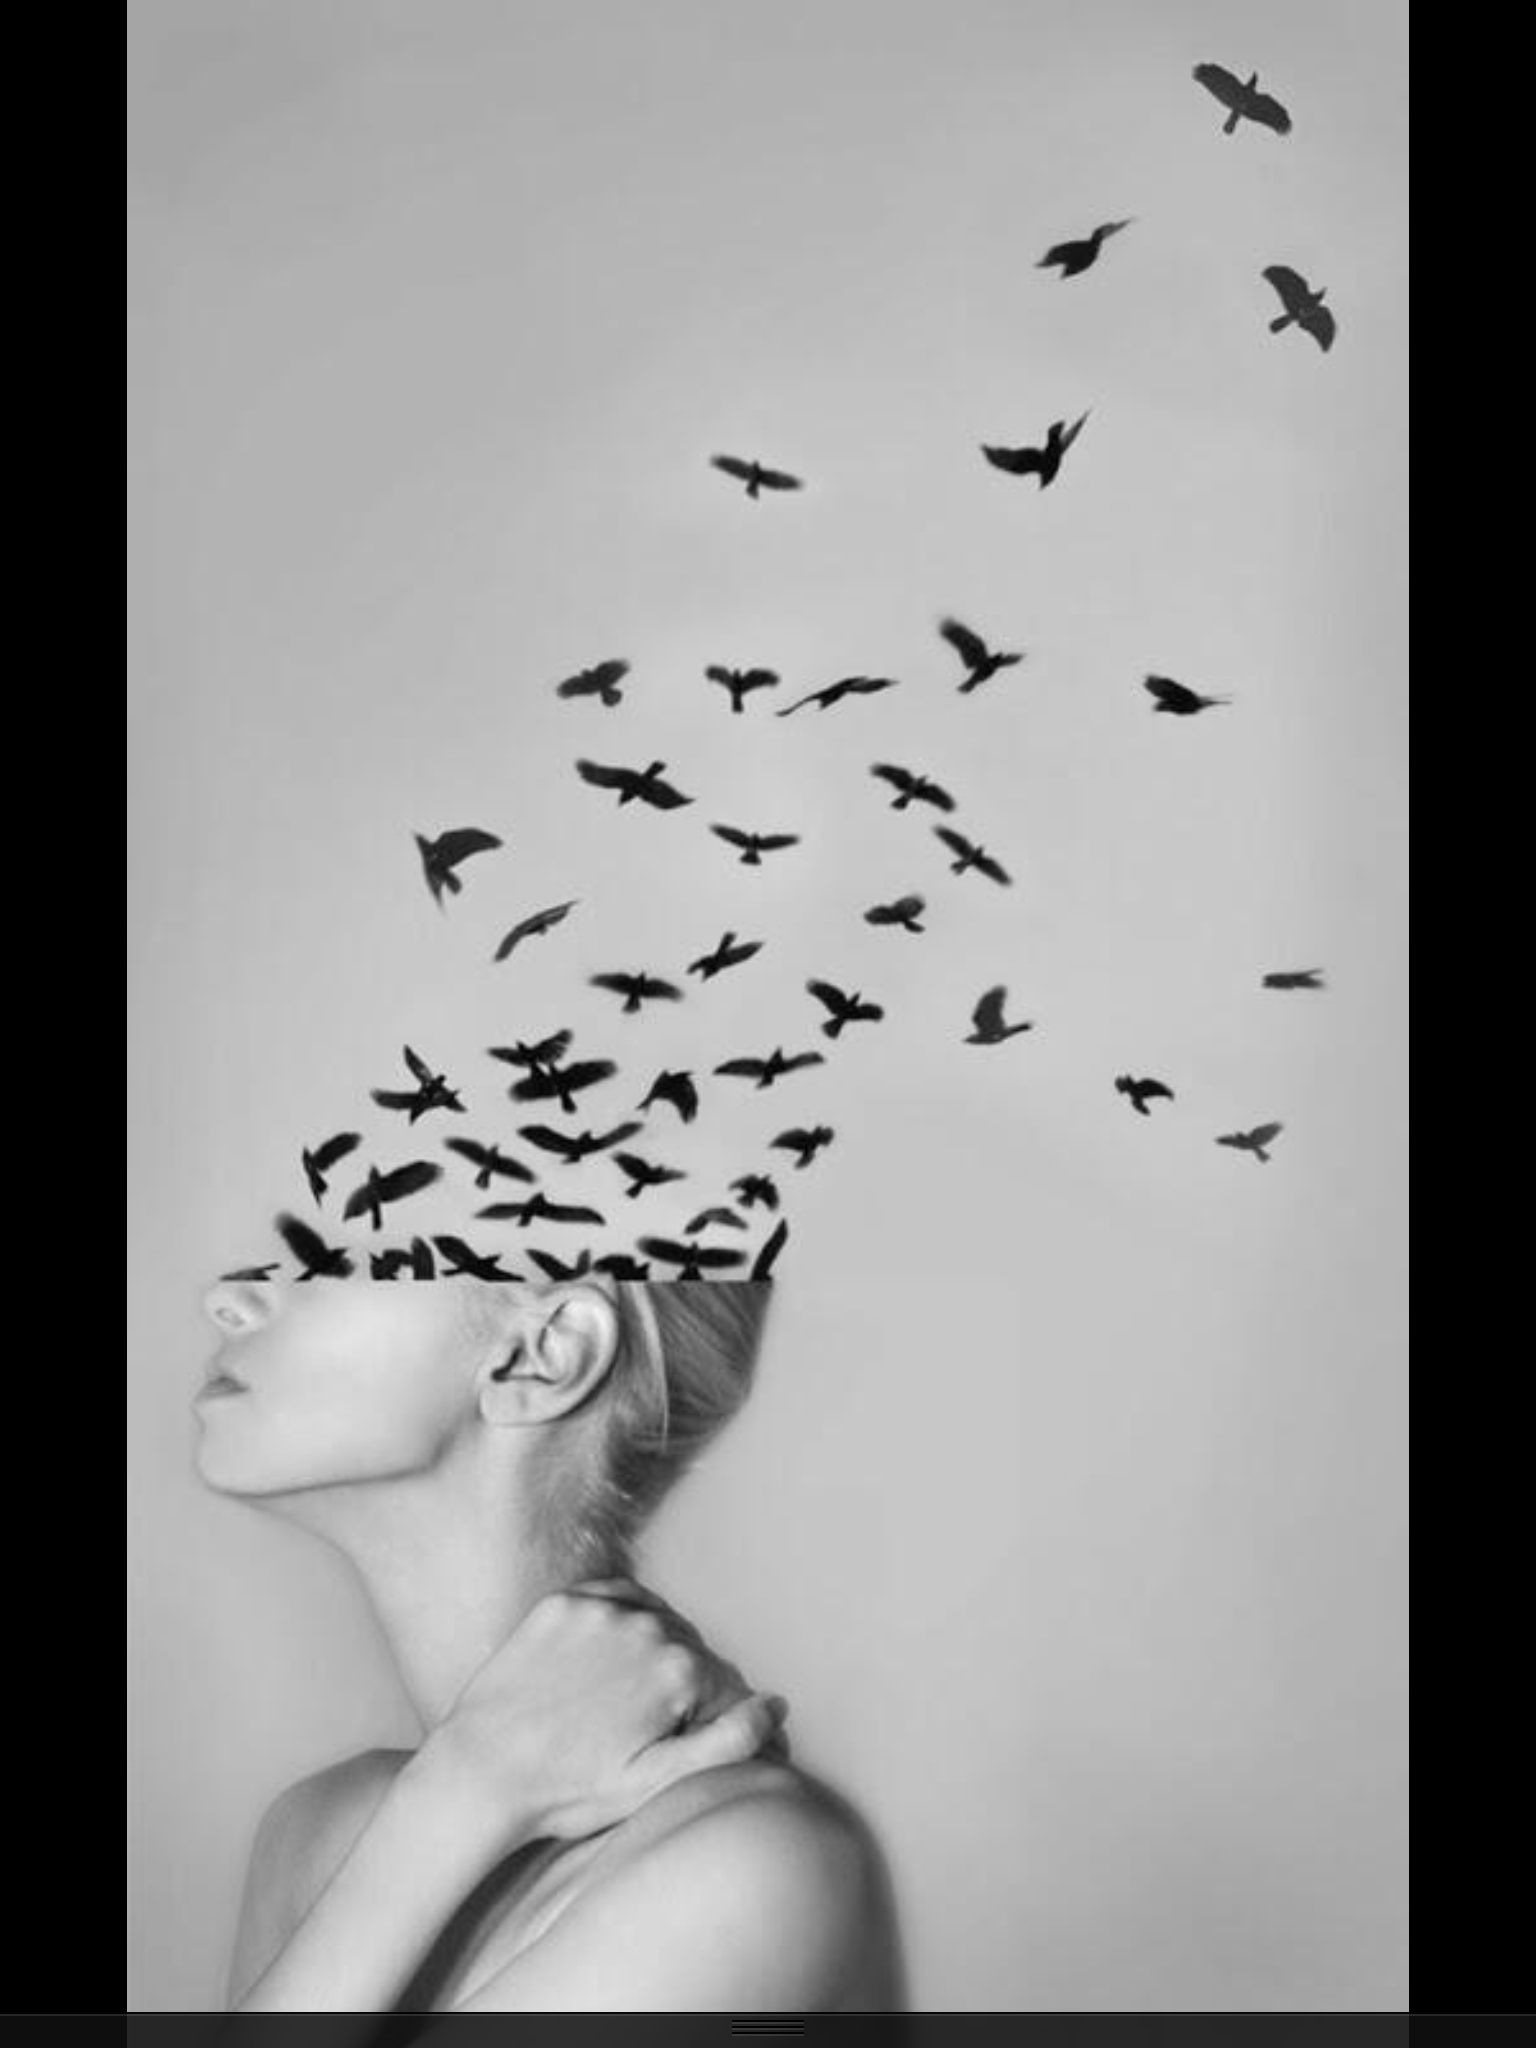 Pin By Gigi Romero Lazo On B N Nature Collage Conceptual Photography Surreal Collage